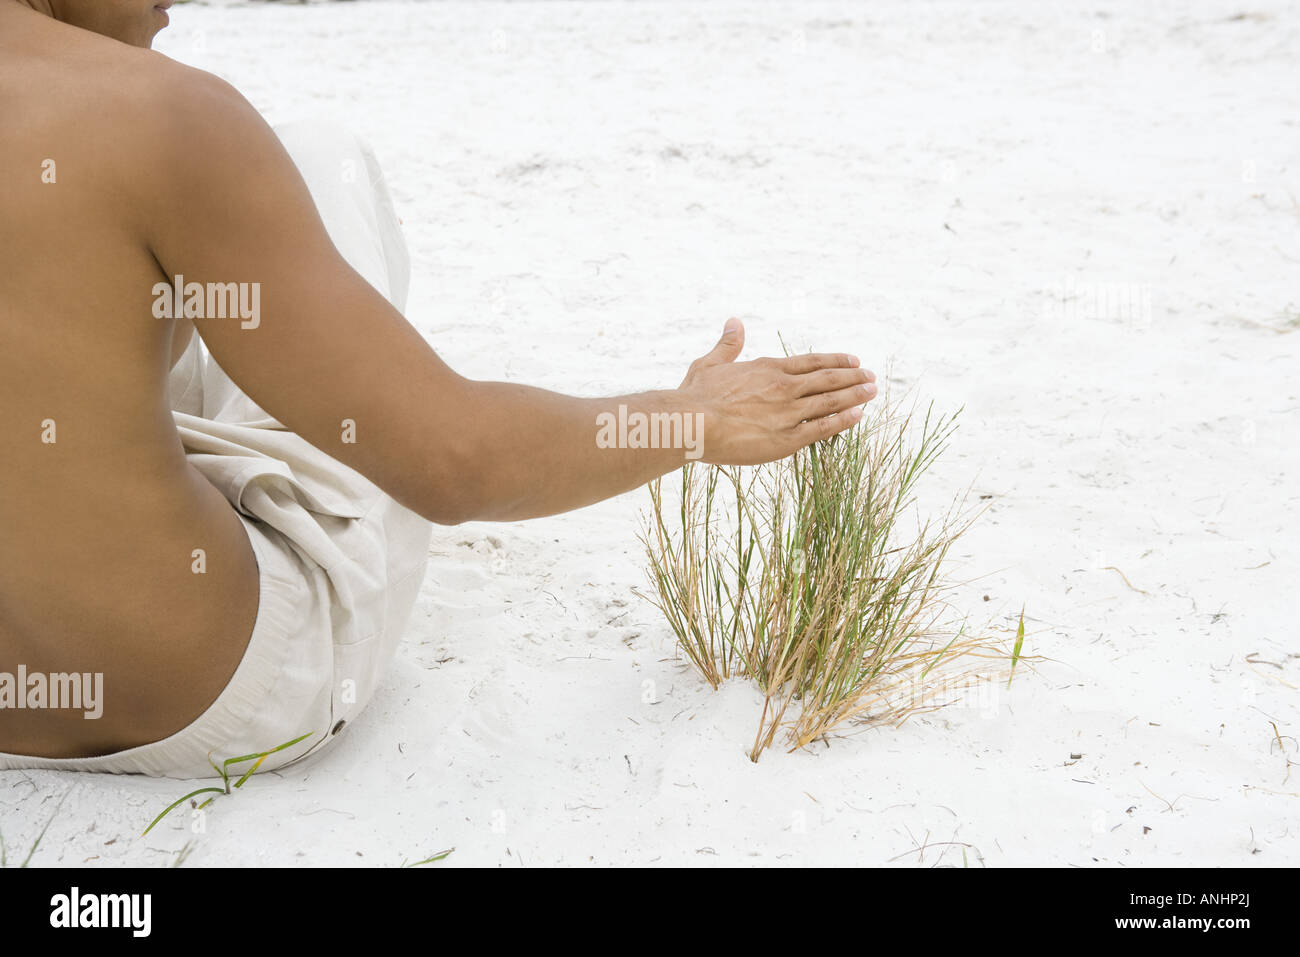 Man sitting in sand touching dune grass, cropped rear view - Stock Image